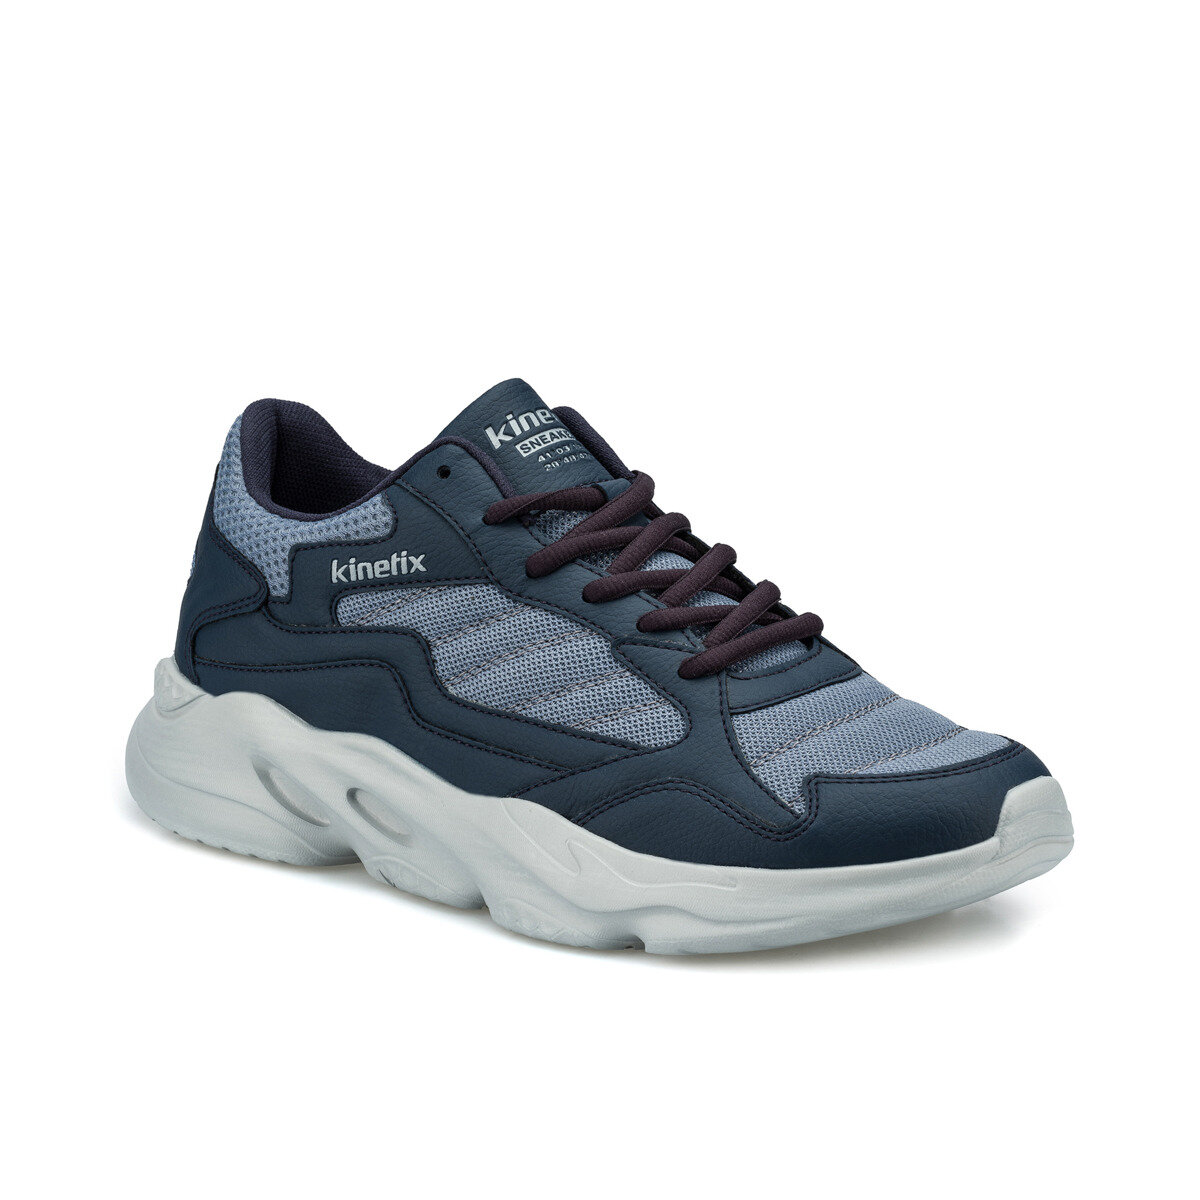 FLO EPIC MESH M Navy Blue Men 'S Sneaker Shoes KINETIX